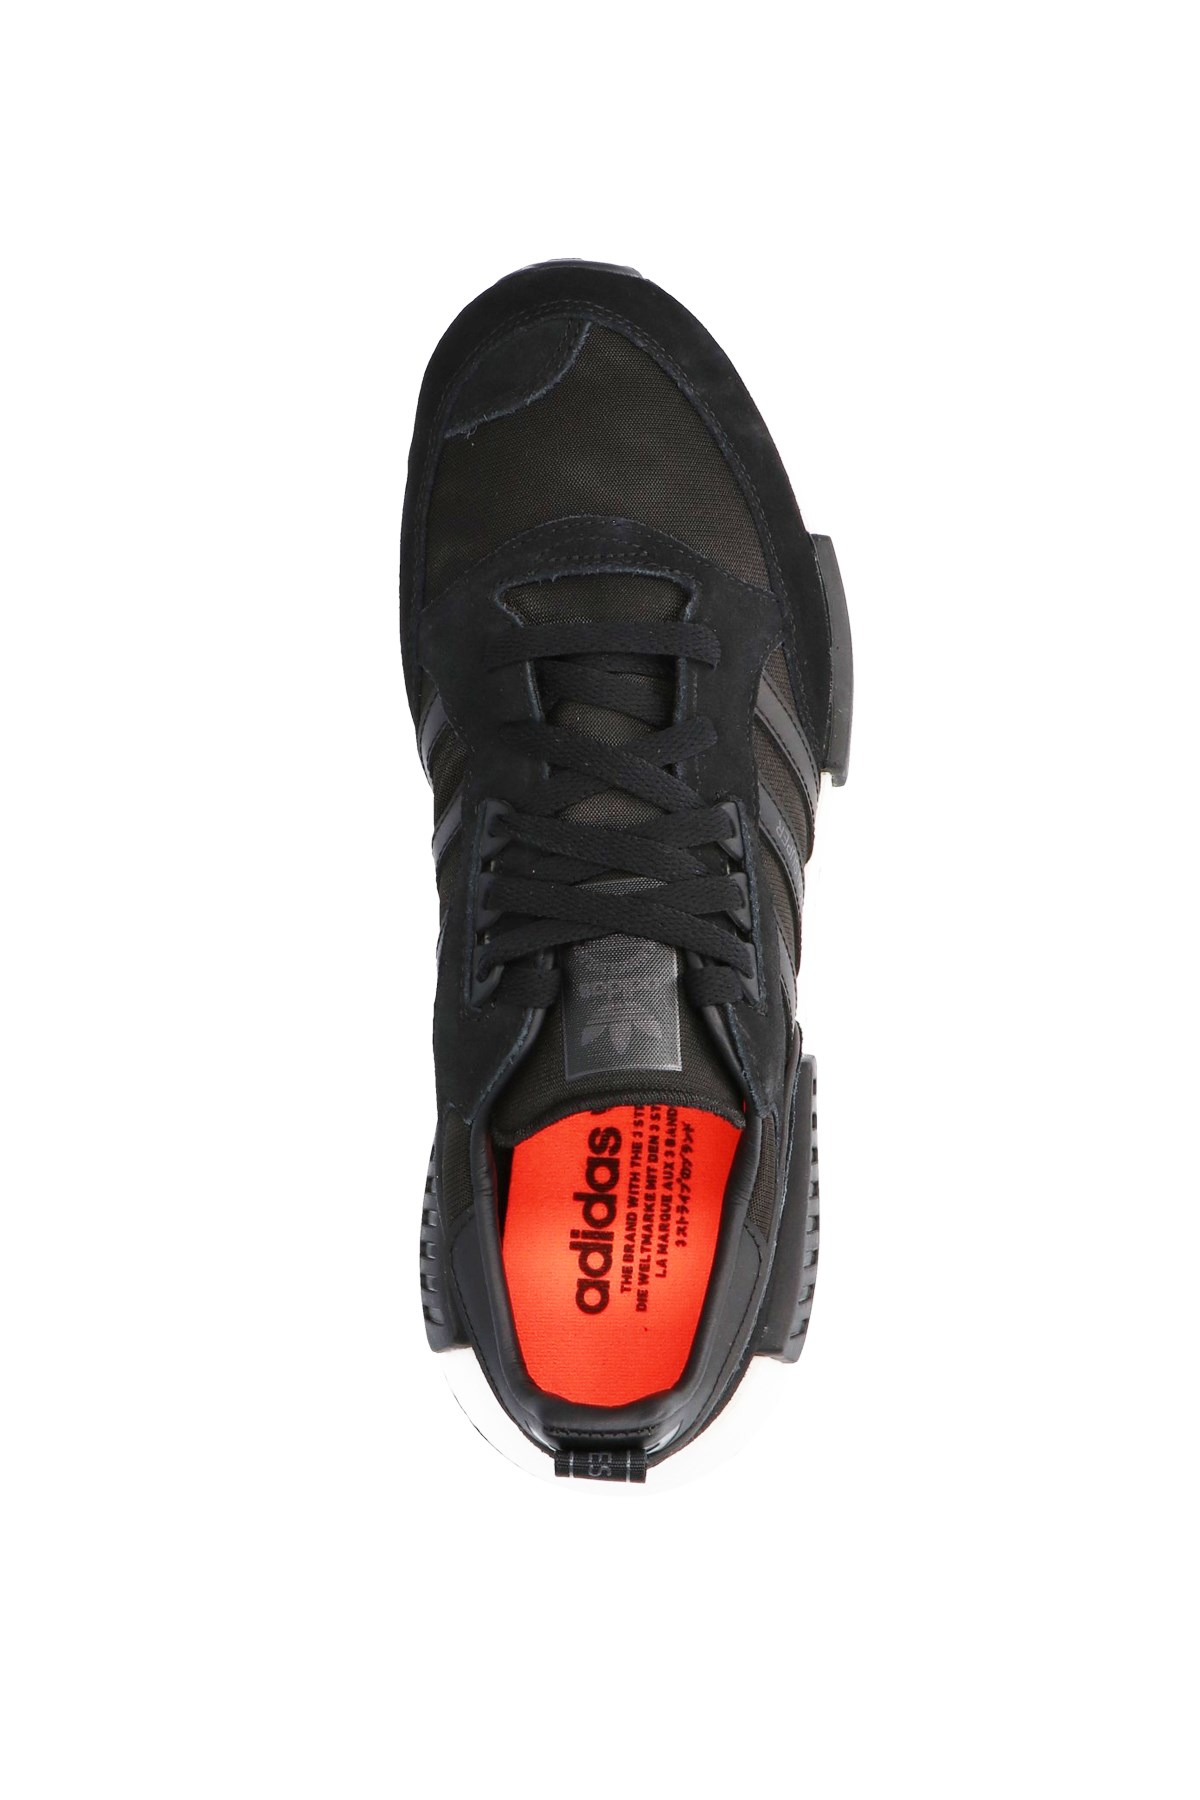 competitive price 5b136 35677 'BostonsuperxR1' sneakers